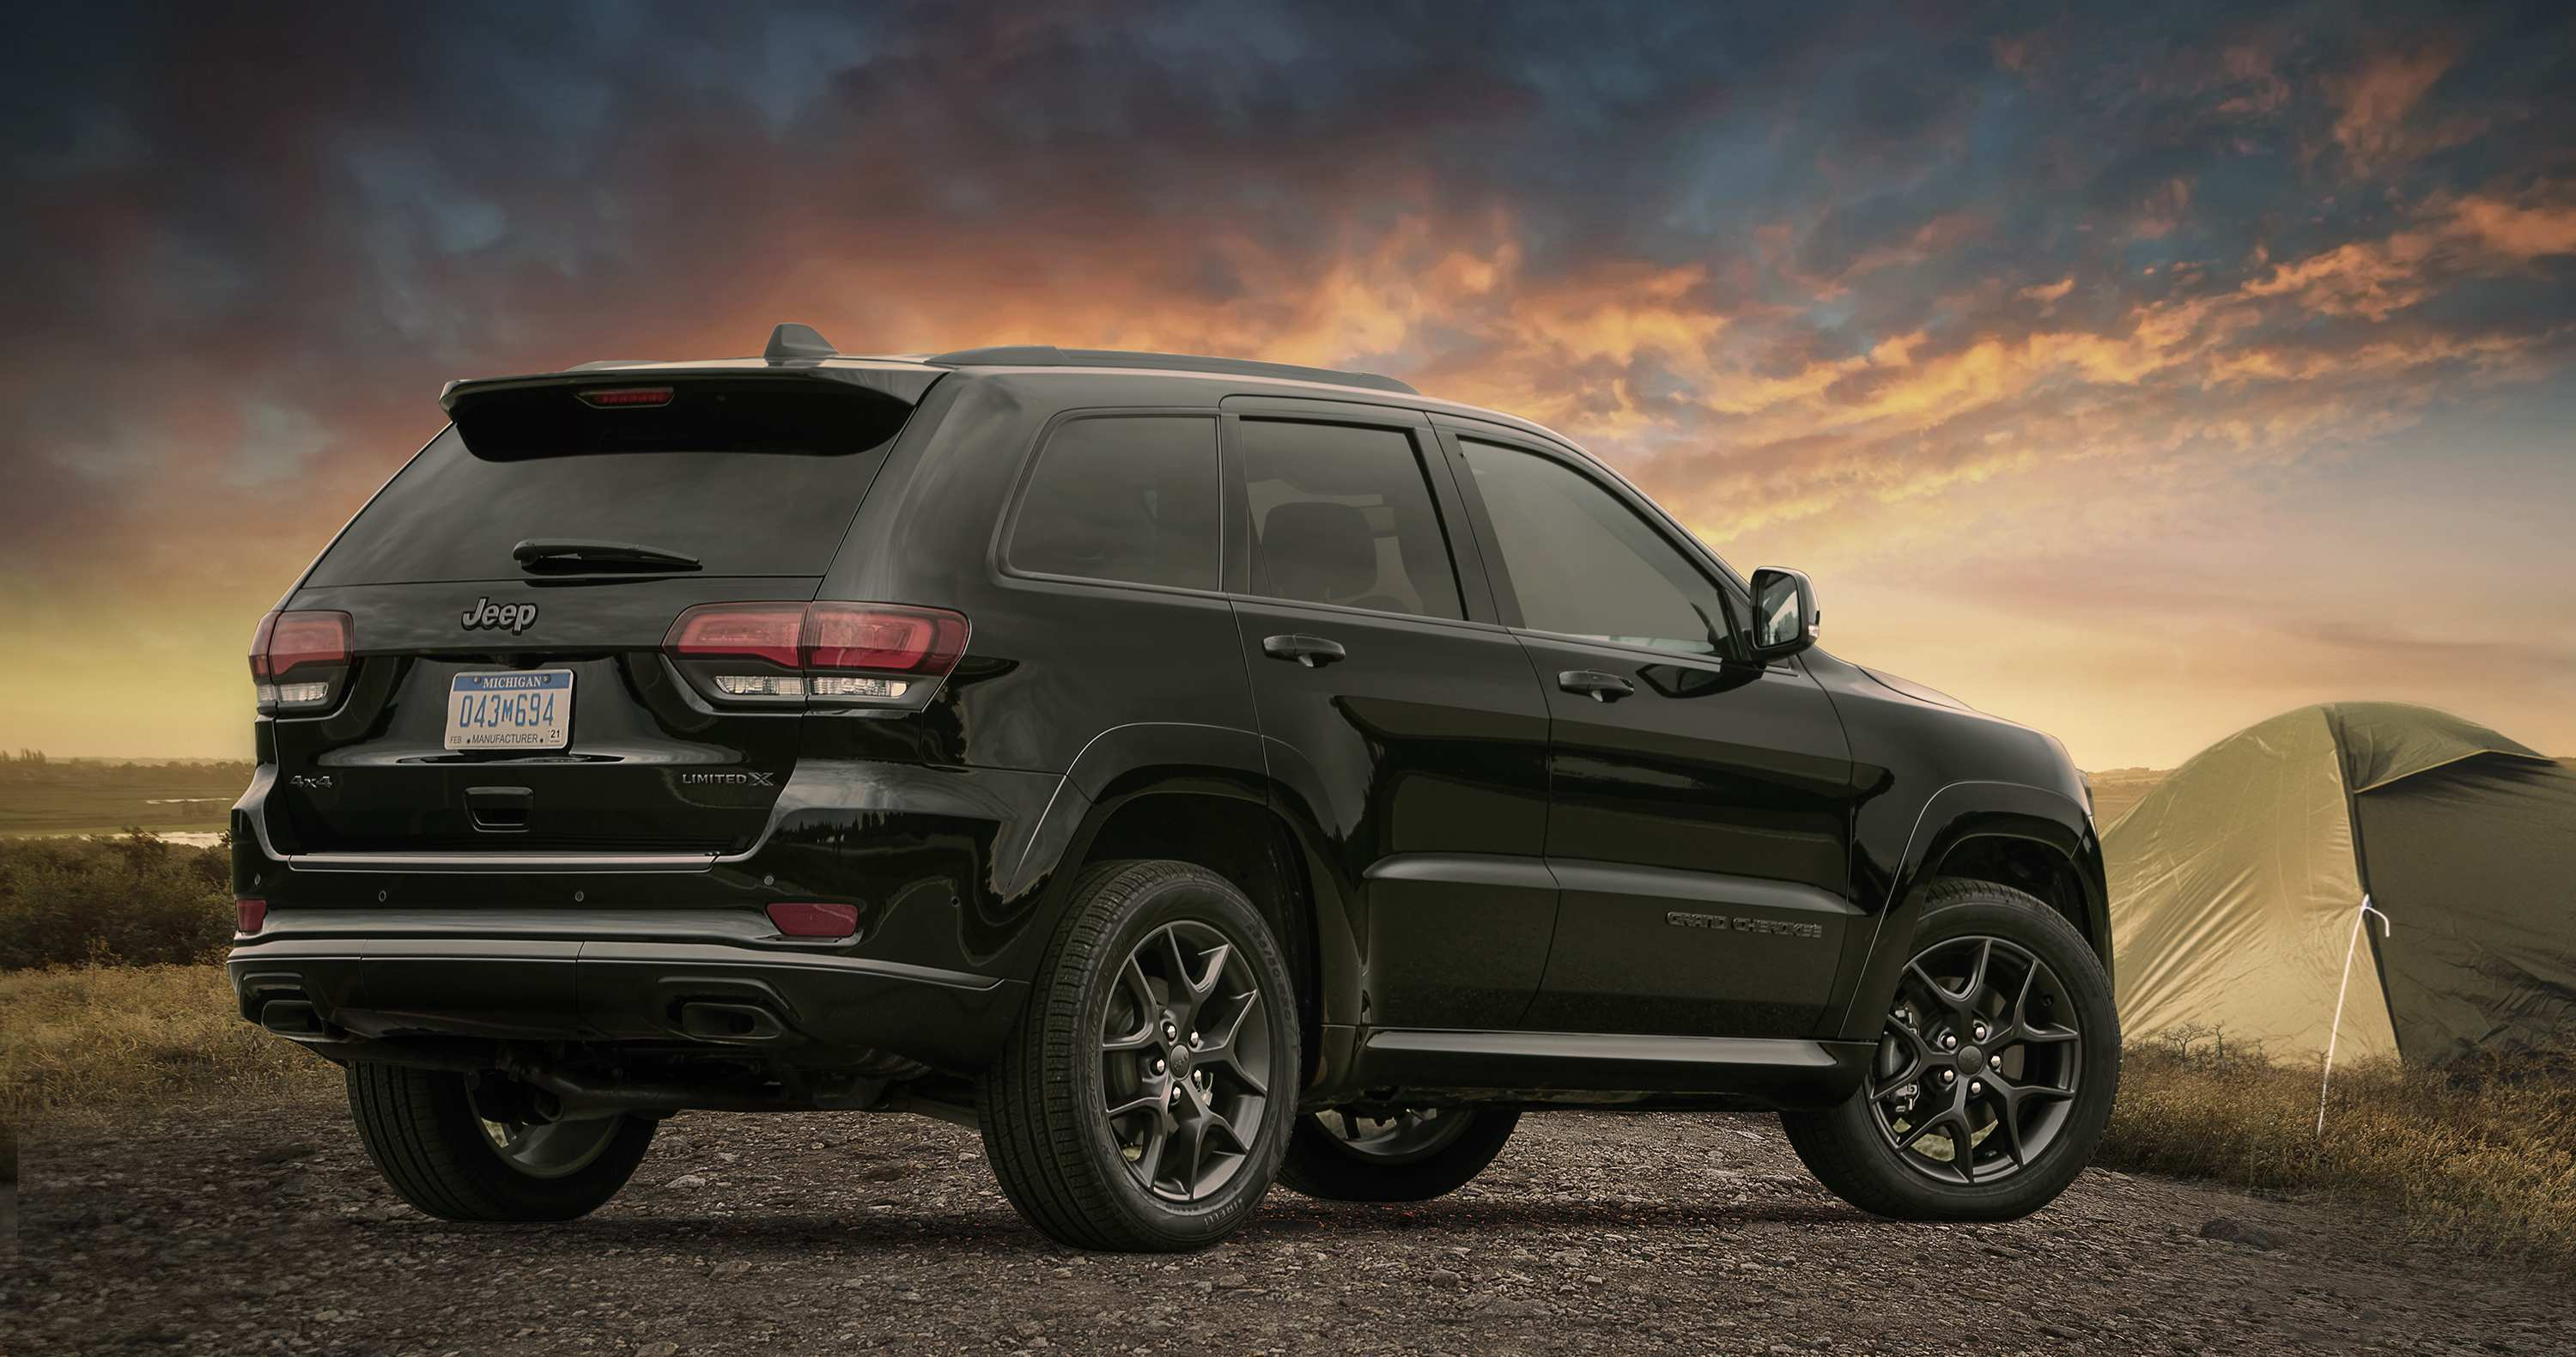 76 Great Best 2019 Jeep Grand Cherokee Limited X New Interior Pricing by Best 2019 Jeep Grand Cherokee Limited X New Interior